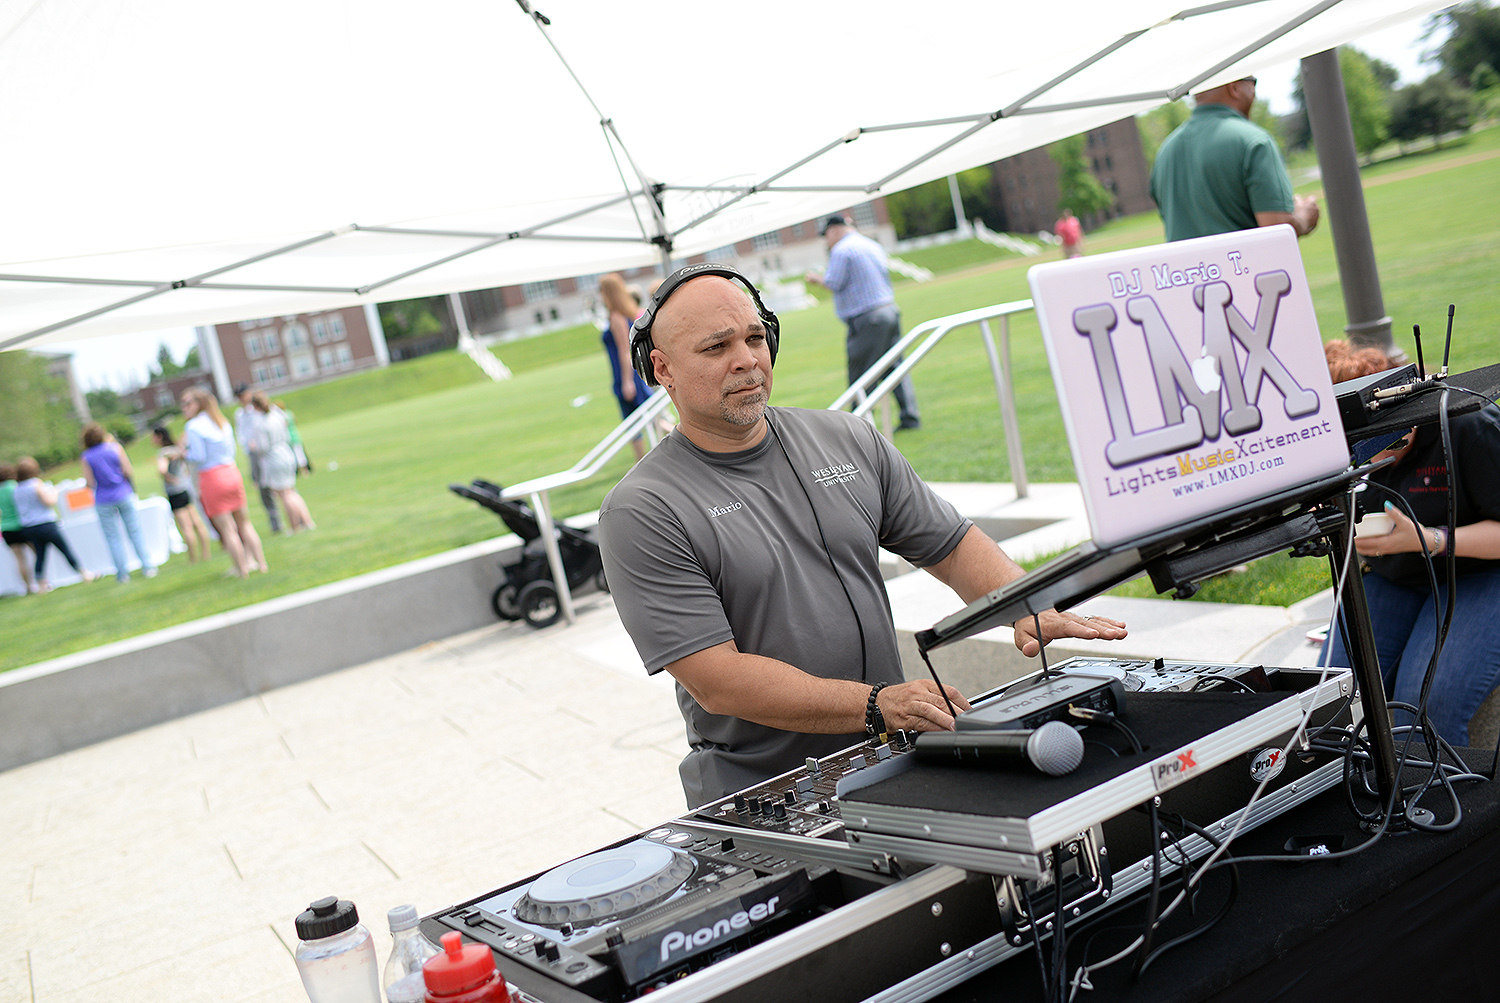 Mario Torres, material handler in Physical Plant, served as the gathering's DJ.